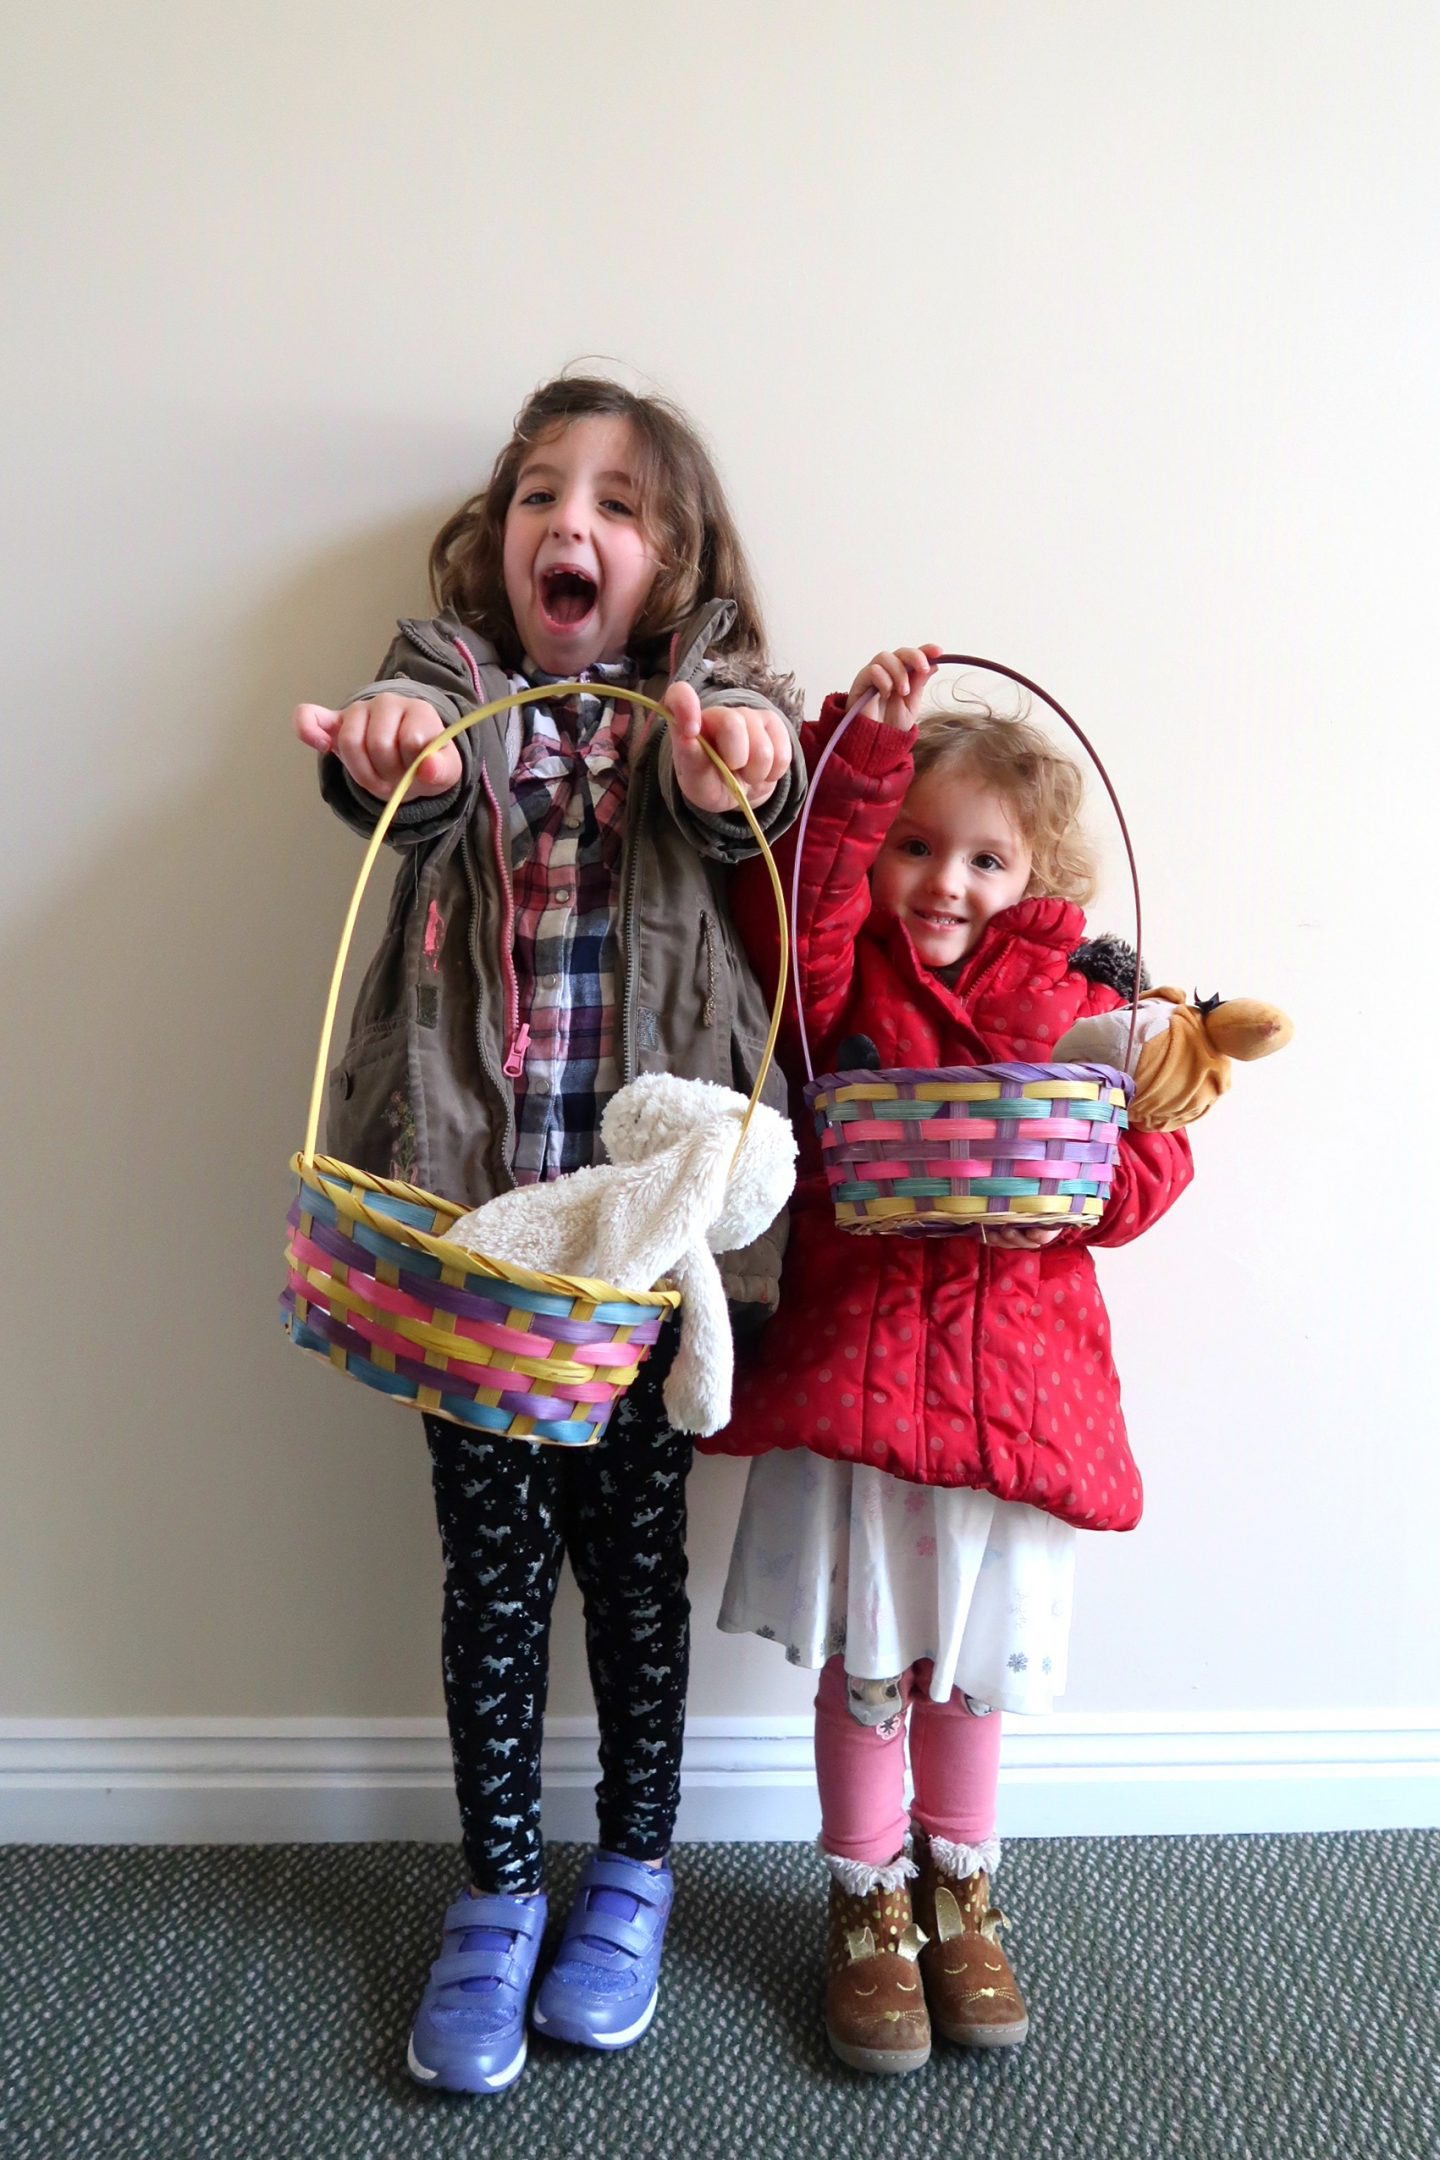 Easter Egg hunt with baskets